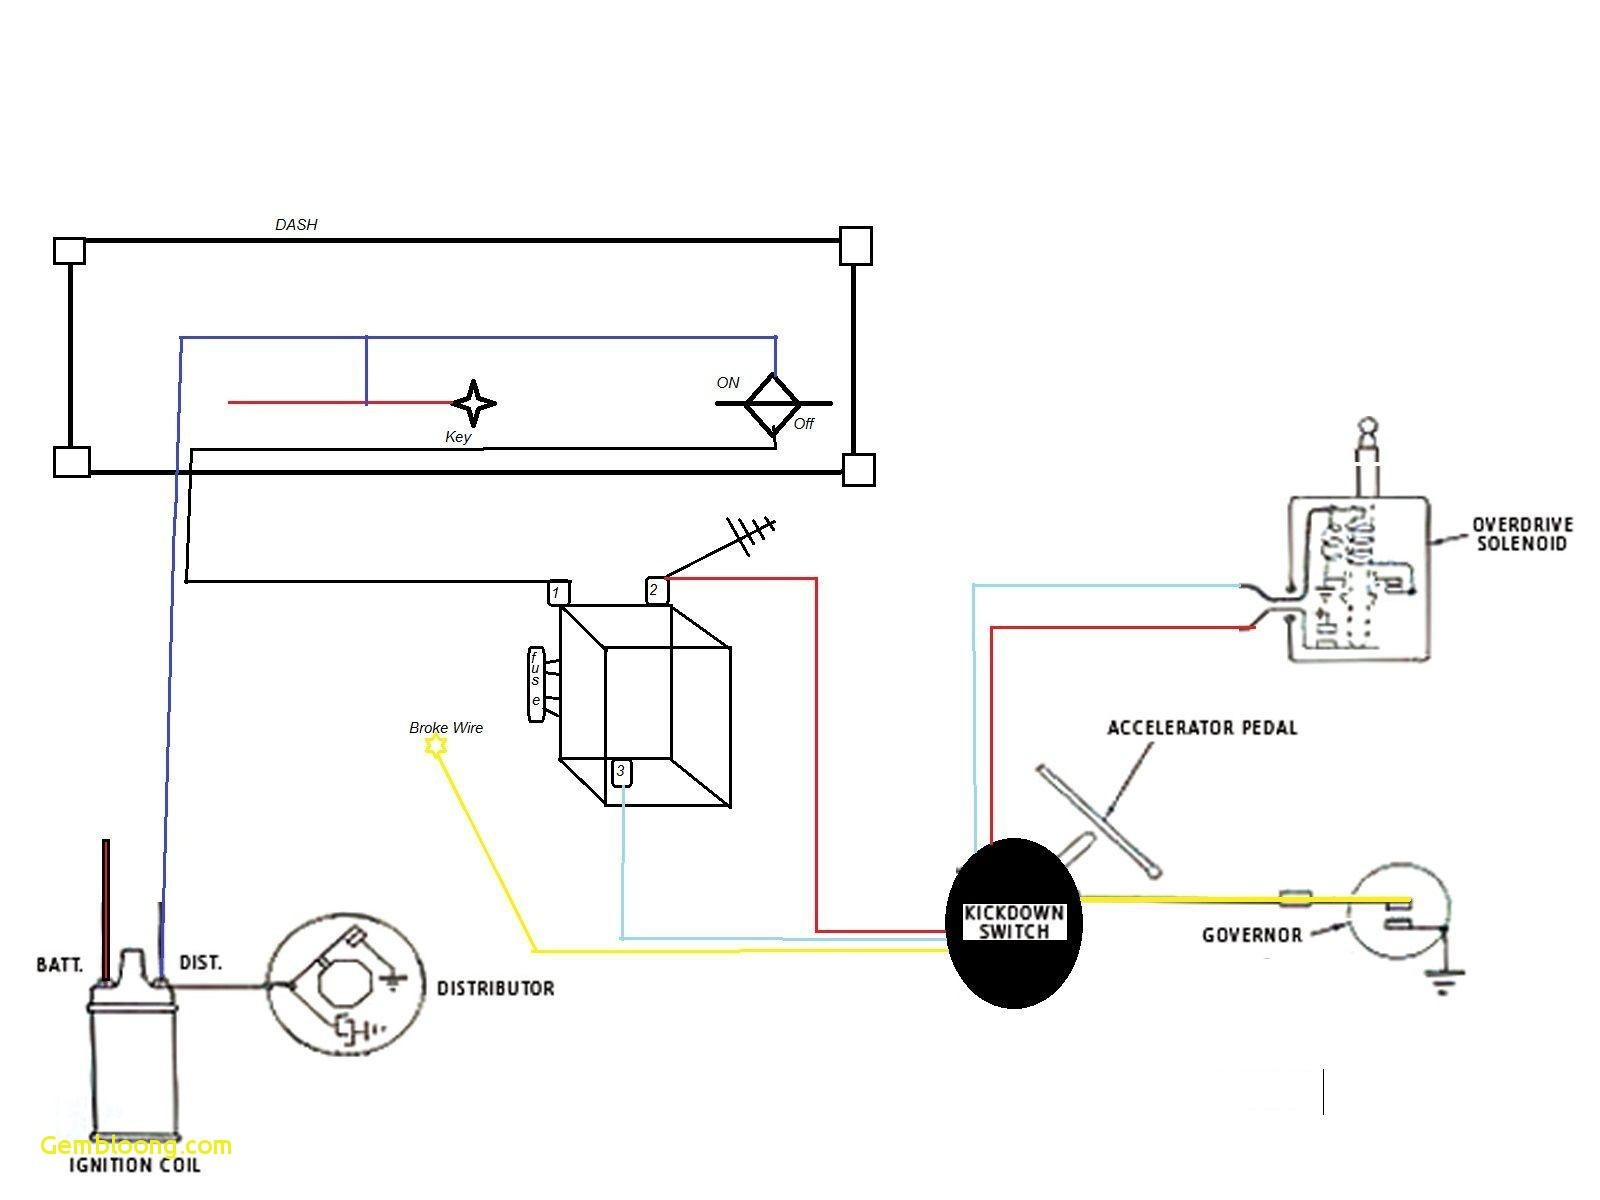 Wireing Diagram for John Deere 318 Stater Motor 8c42 Accelerator Pedal Wiring Diagram Volvo Of Wireing Diagram for John Deere 318 Stater Motor